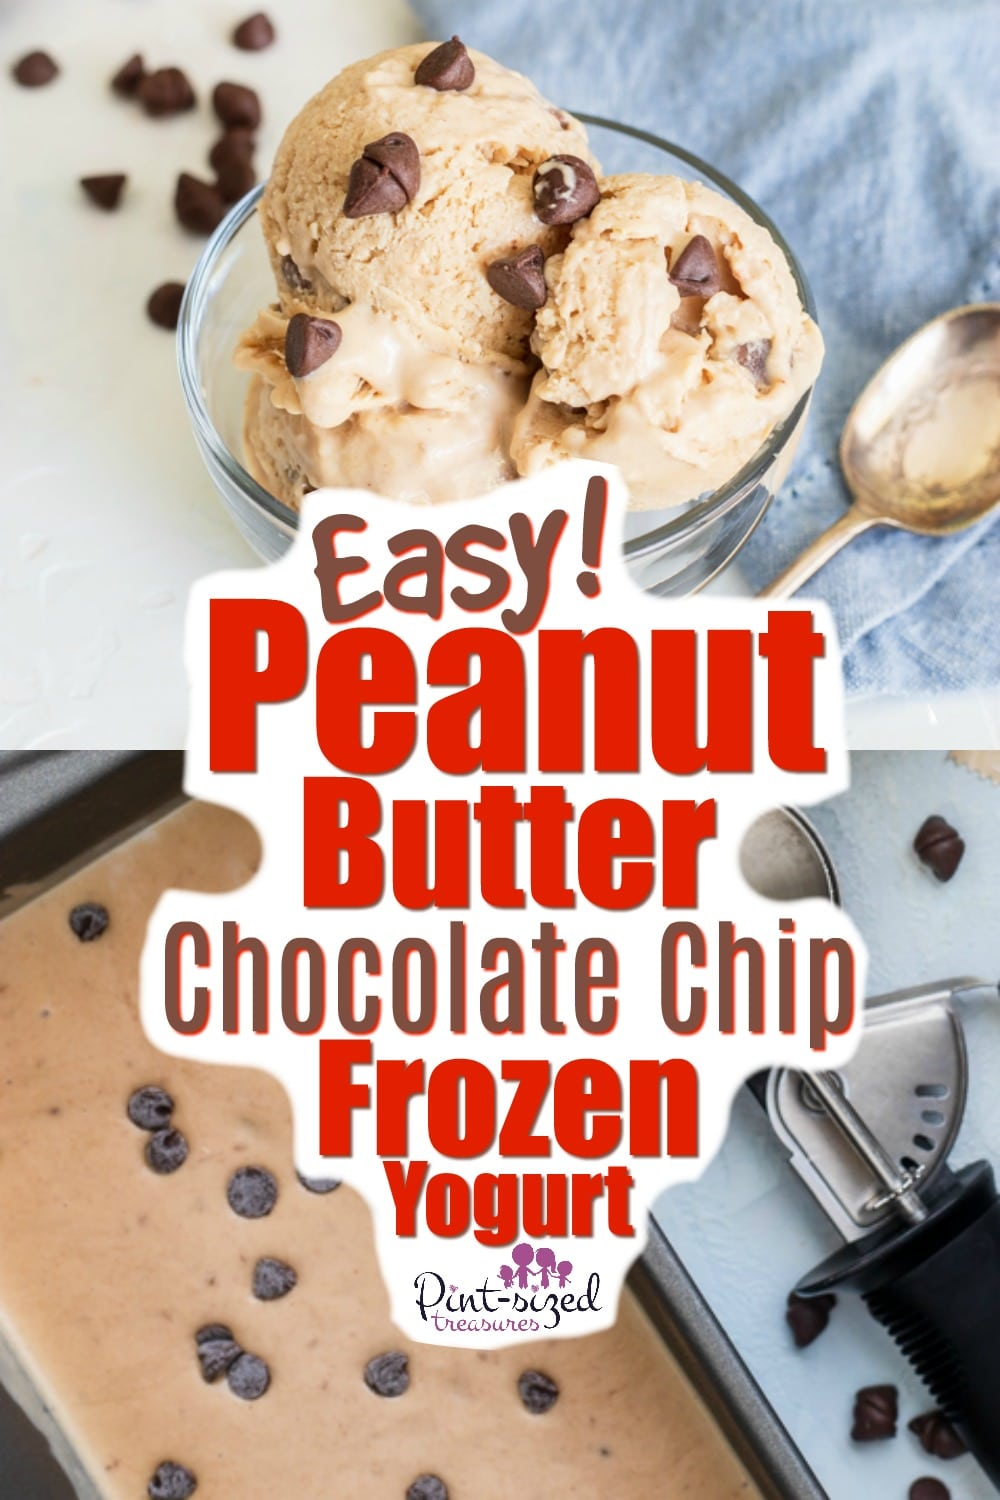 Easy Peanut Butter Chocolate Chip Frozen Yogurt Recipe